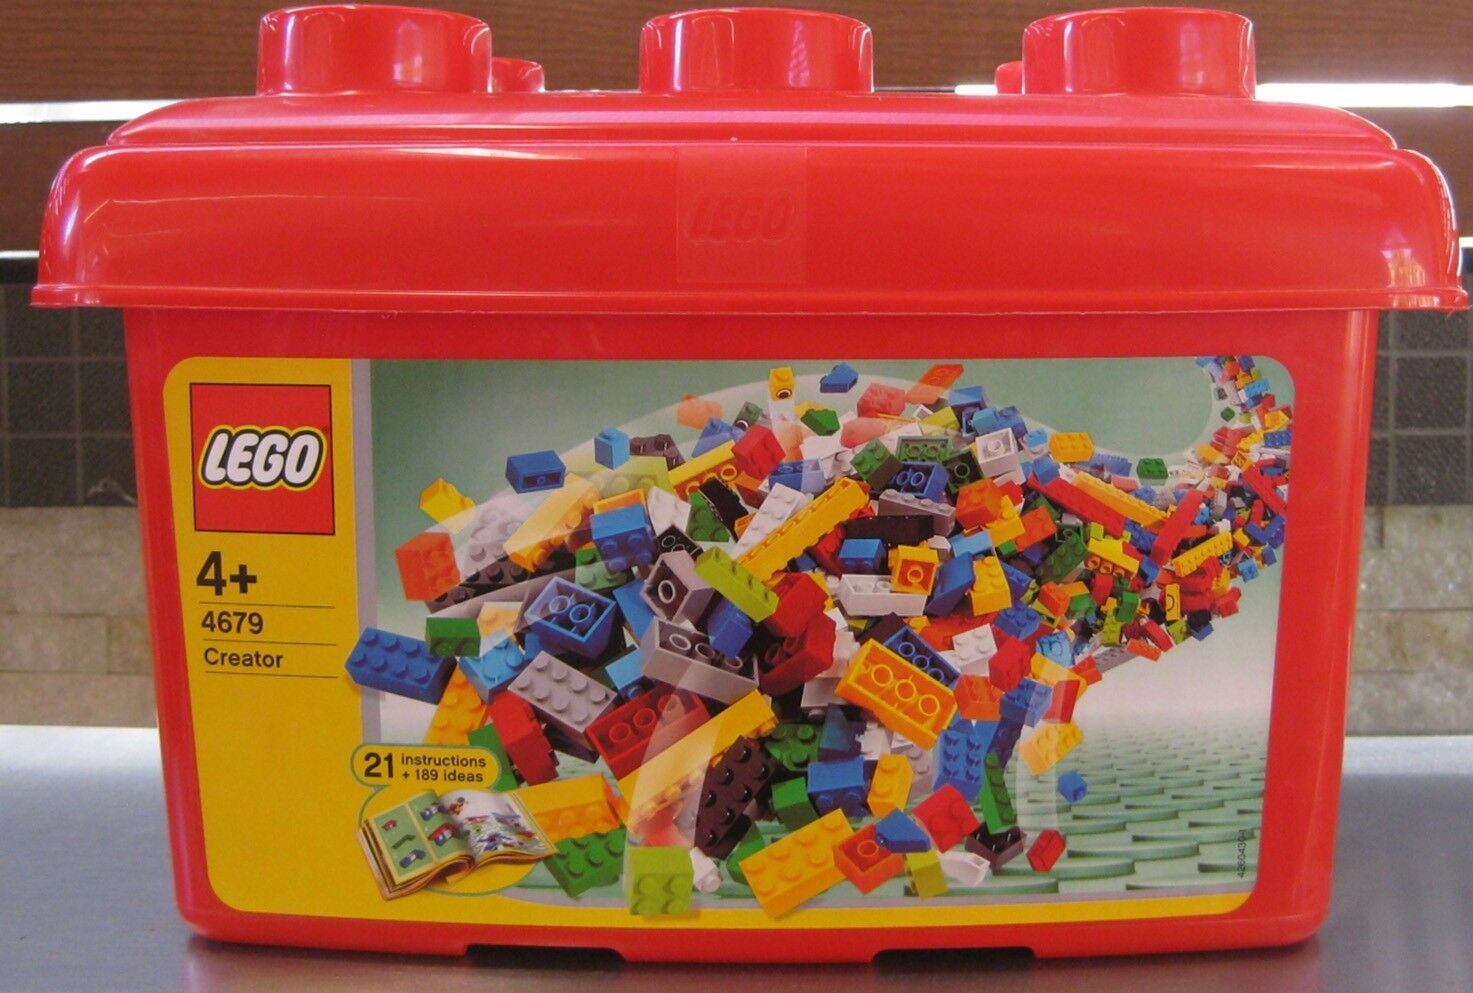 LEGO CREATOR RED TUB RARE & RETIRED DATED 2004 BRAND NEW